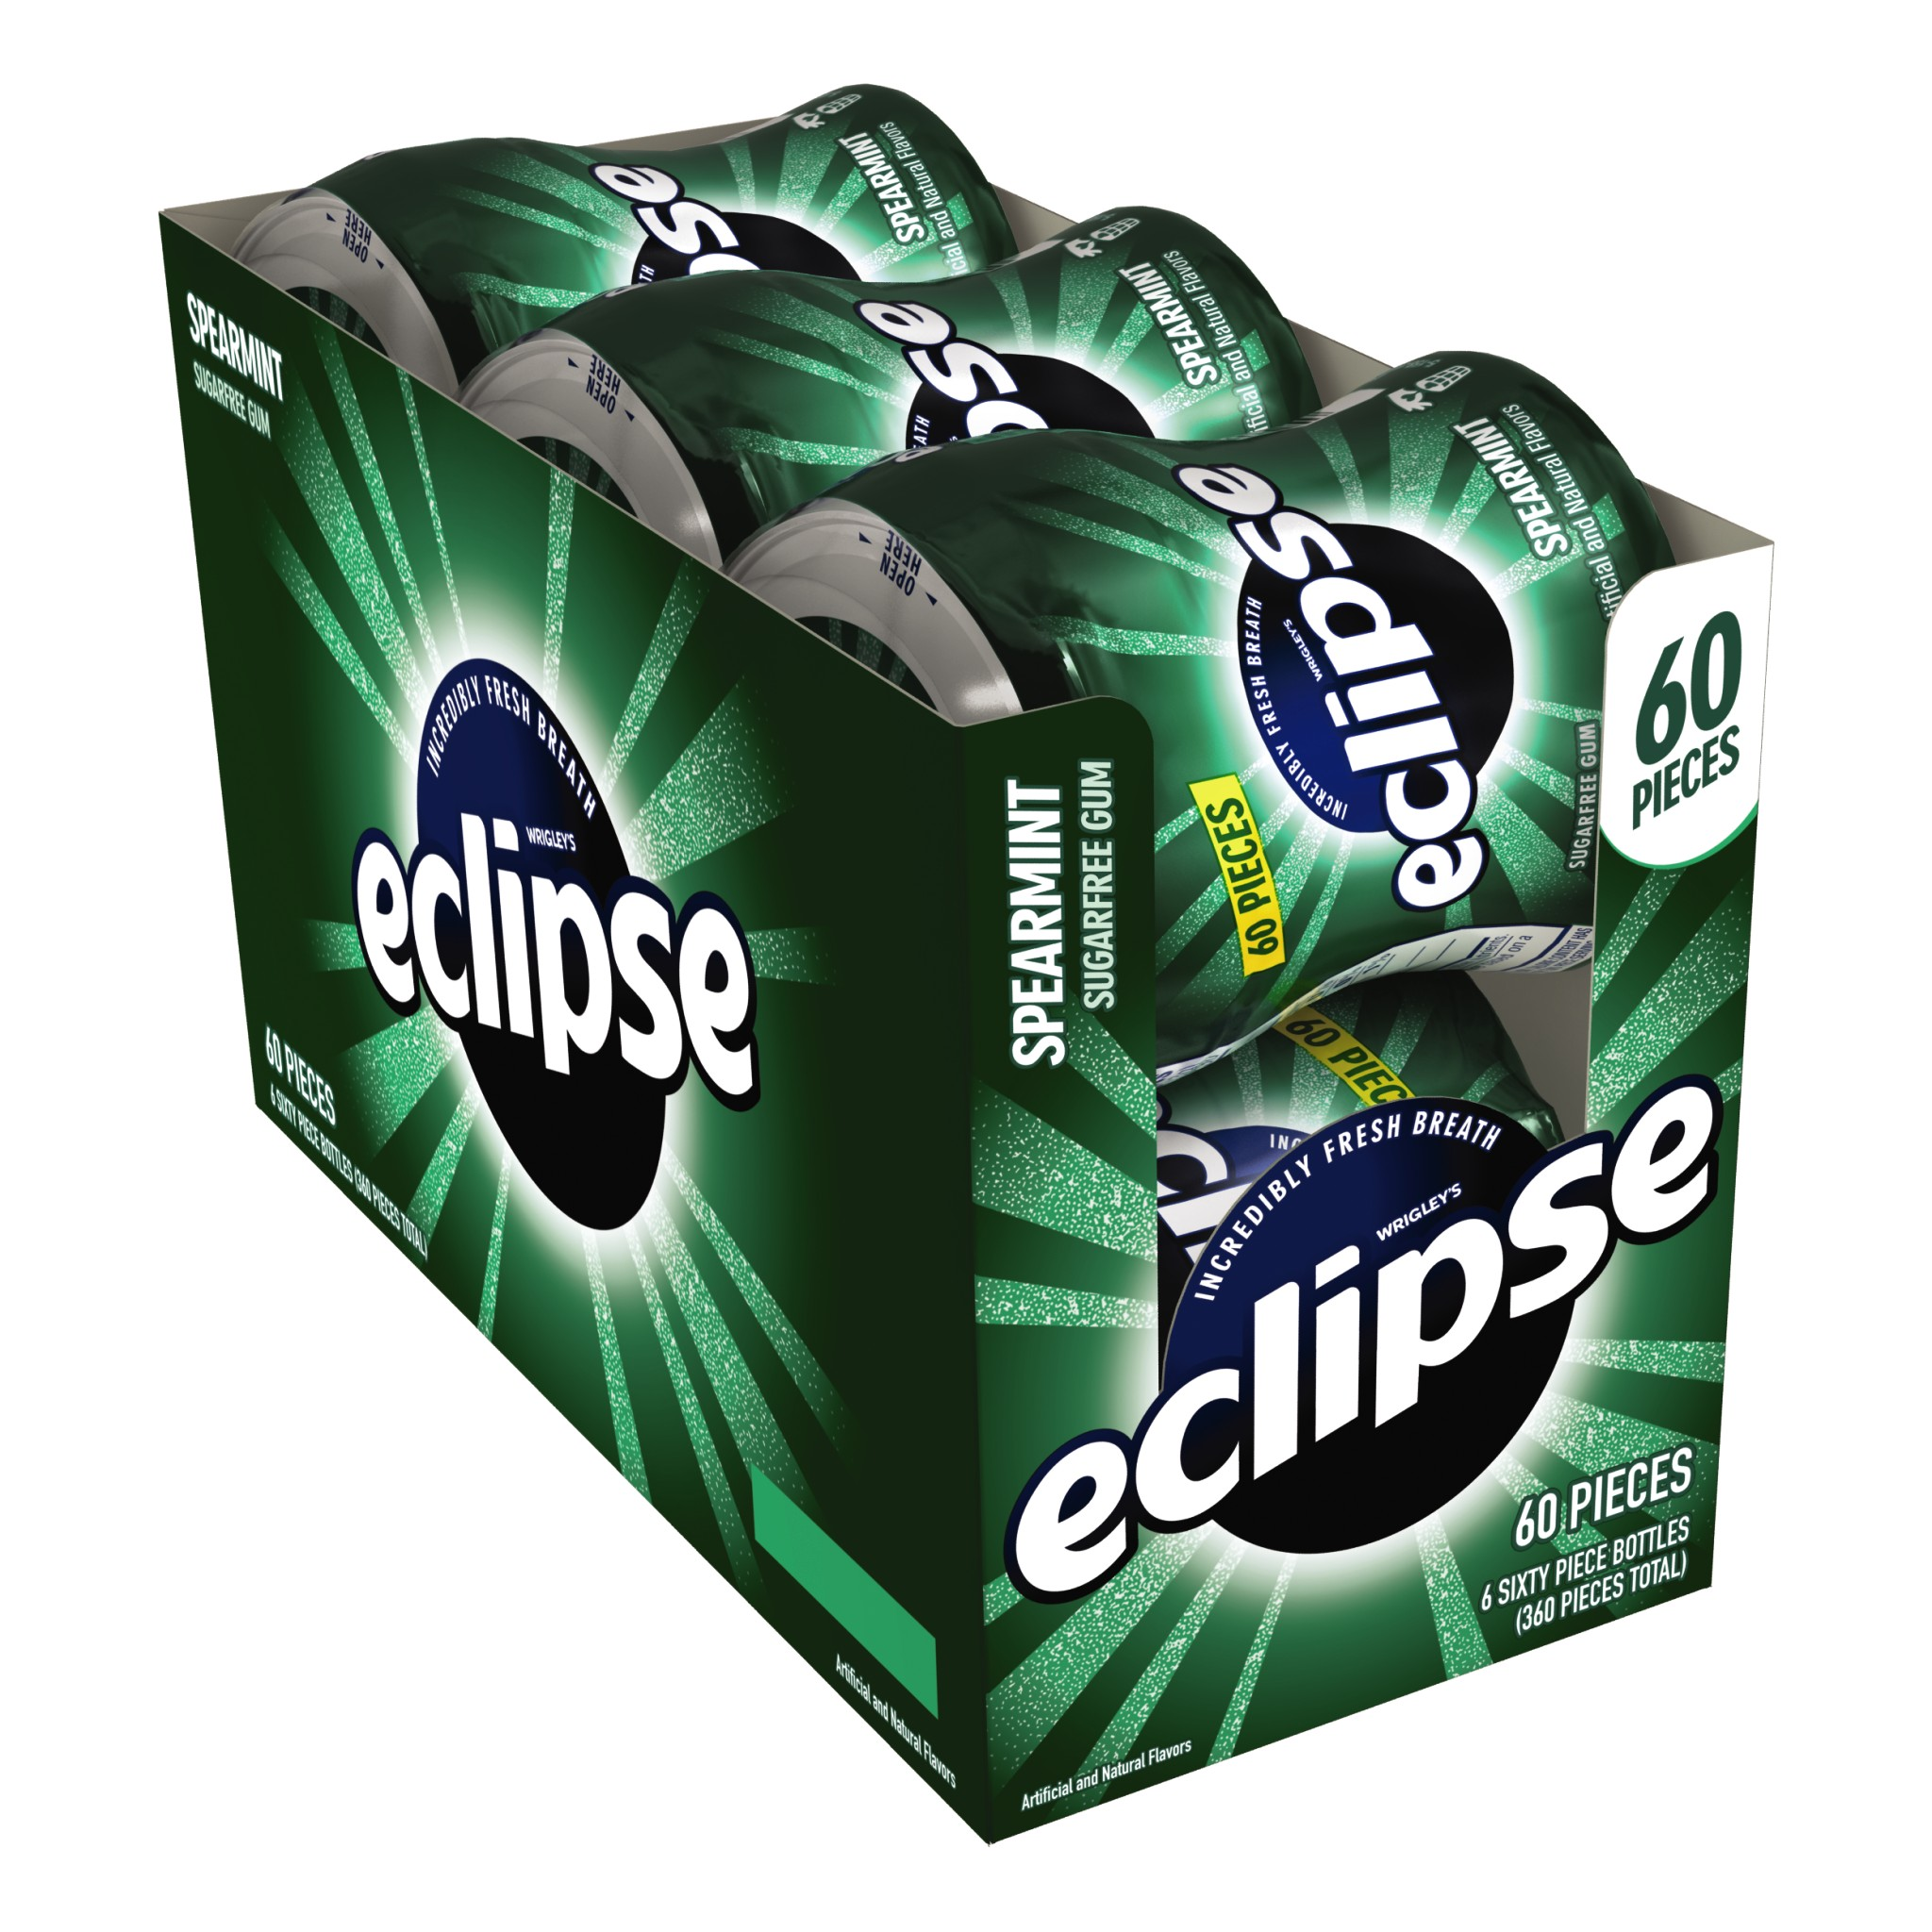 Eclipse, Sugar Free Spearmint Chewing Gum, 60 Pcs, 6 Ct